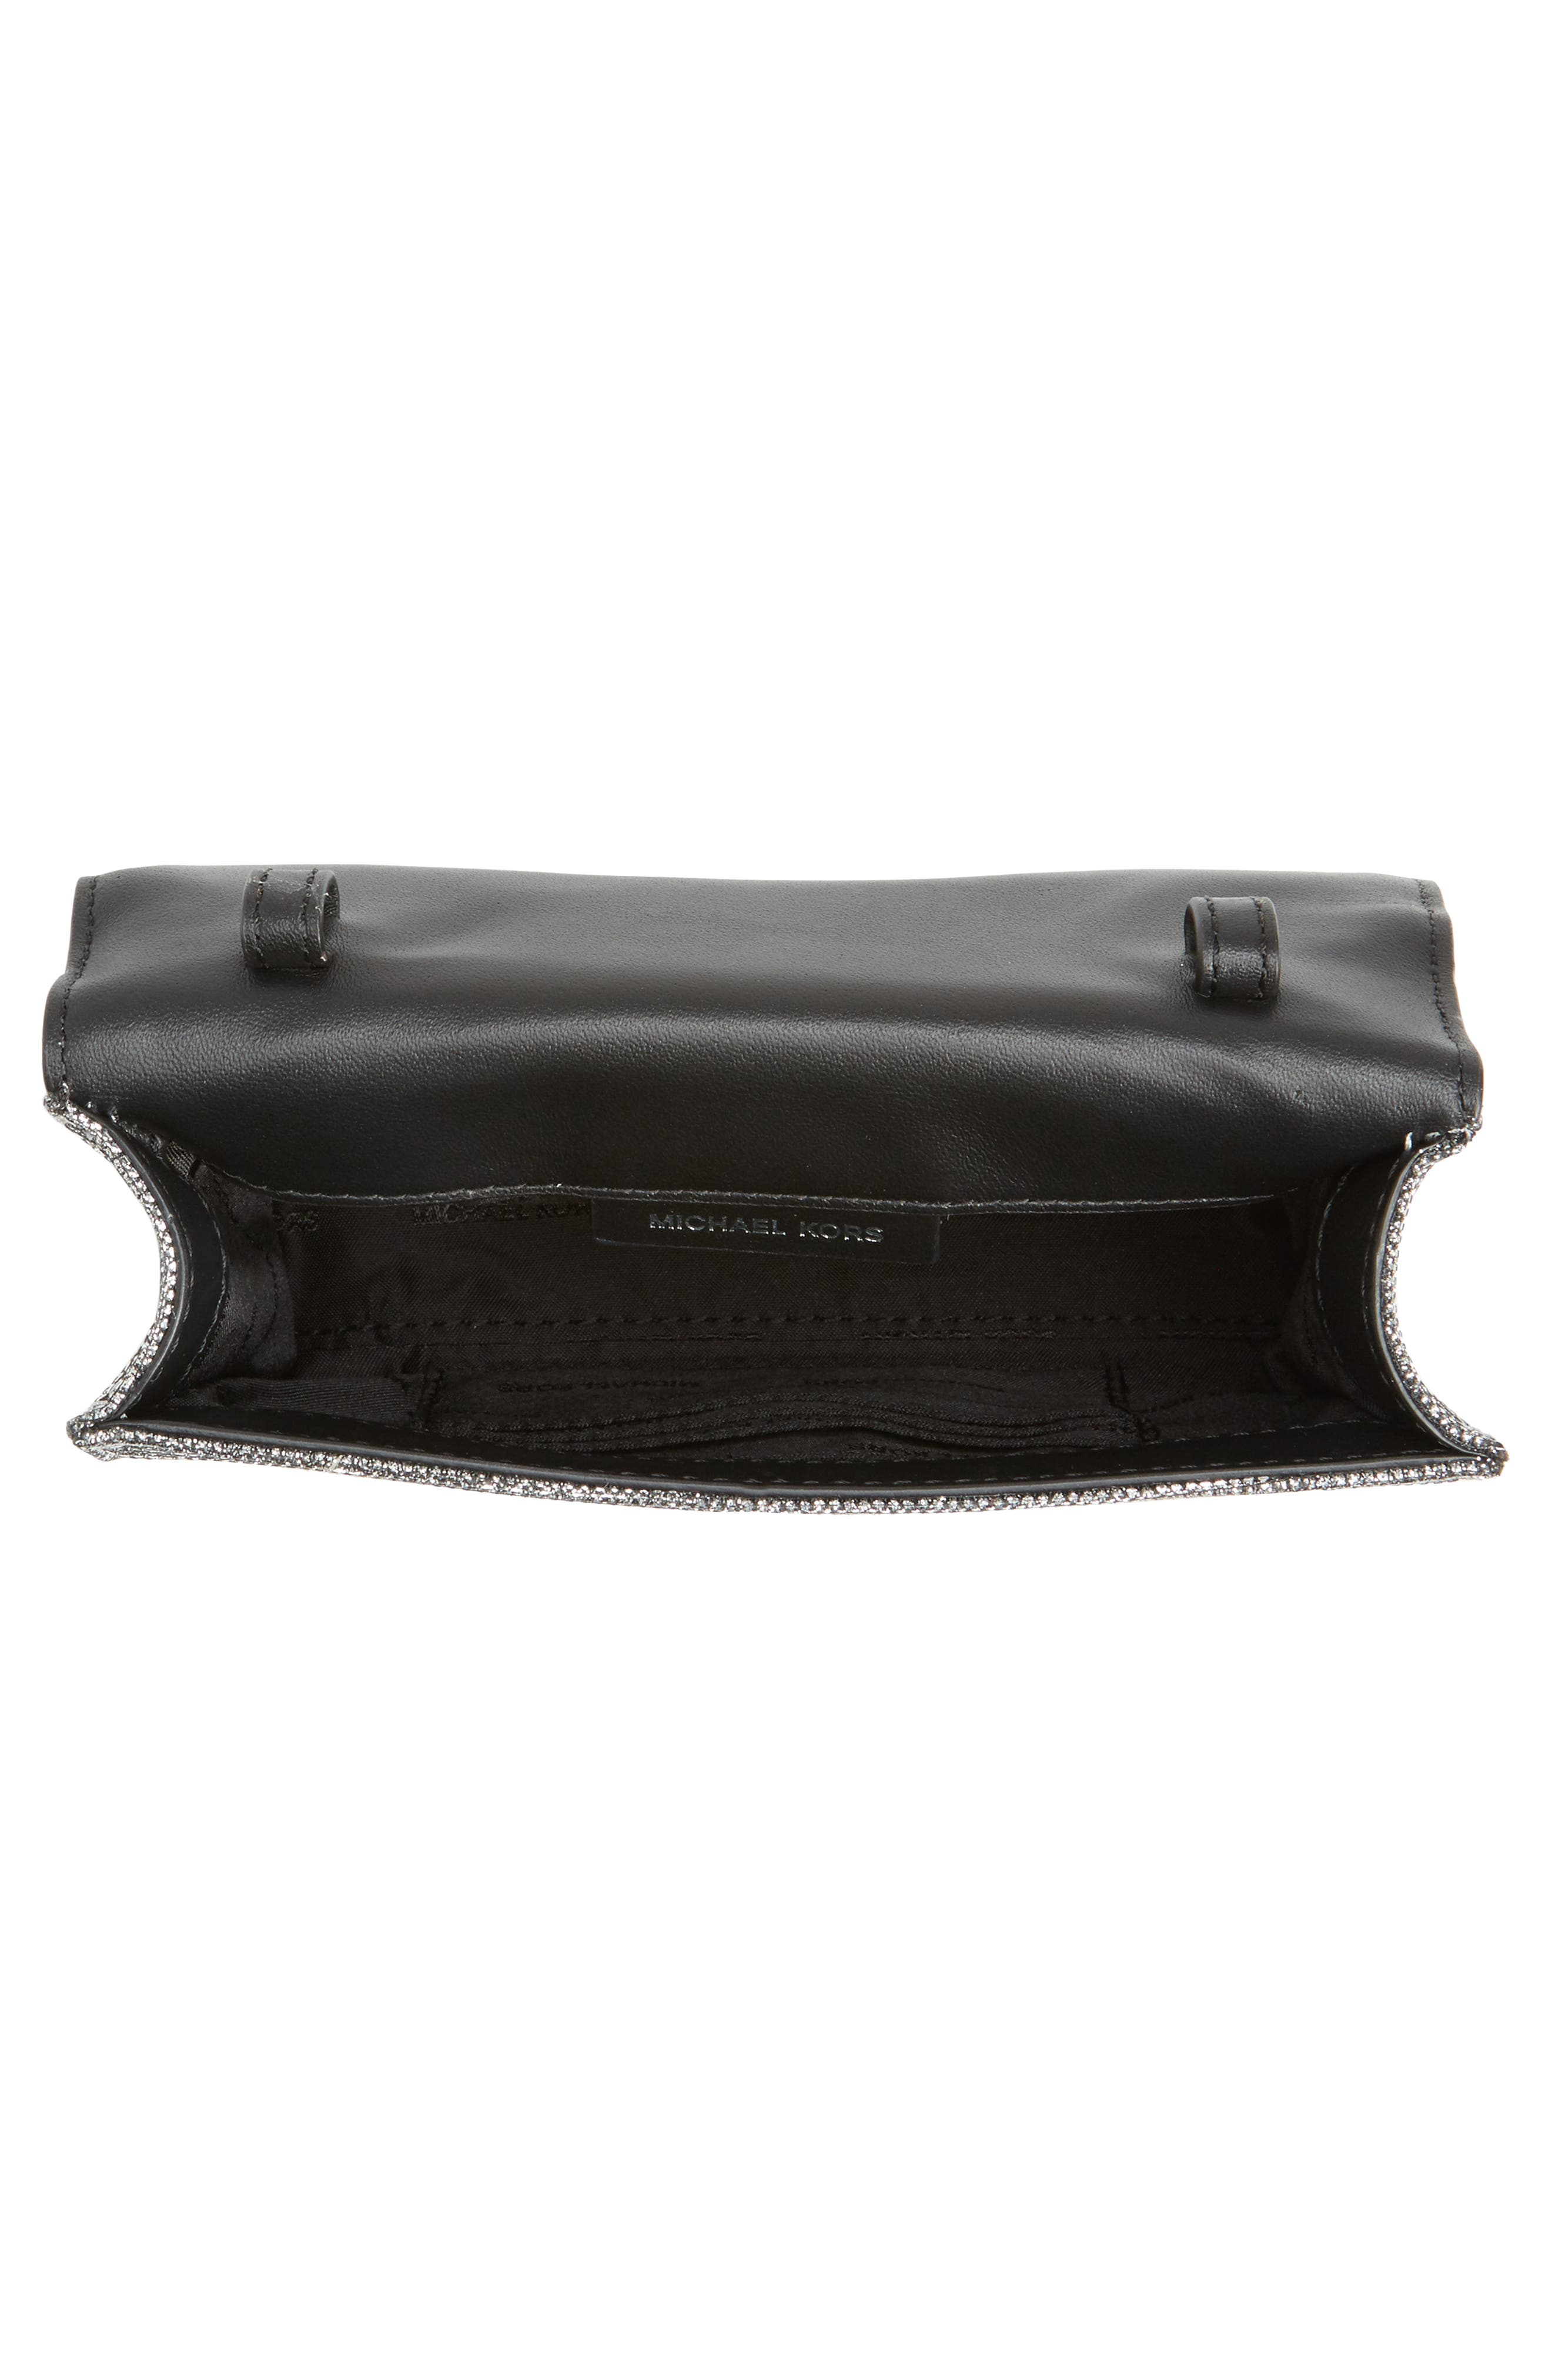 Medium Ruby Convertible Leather Clutch,                             Alternate thumbnail 4, color,                             043